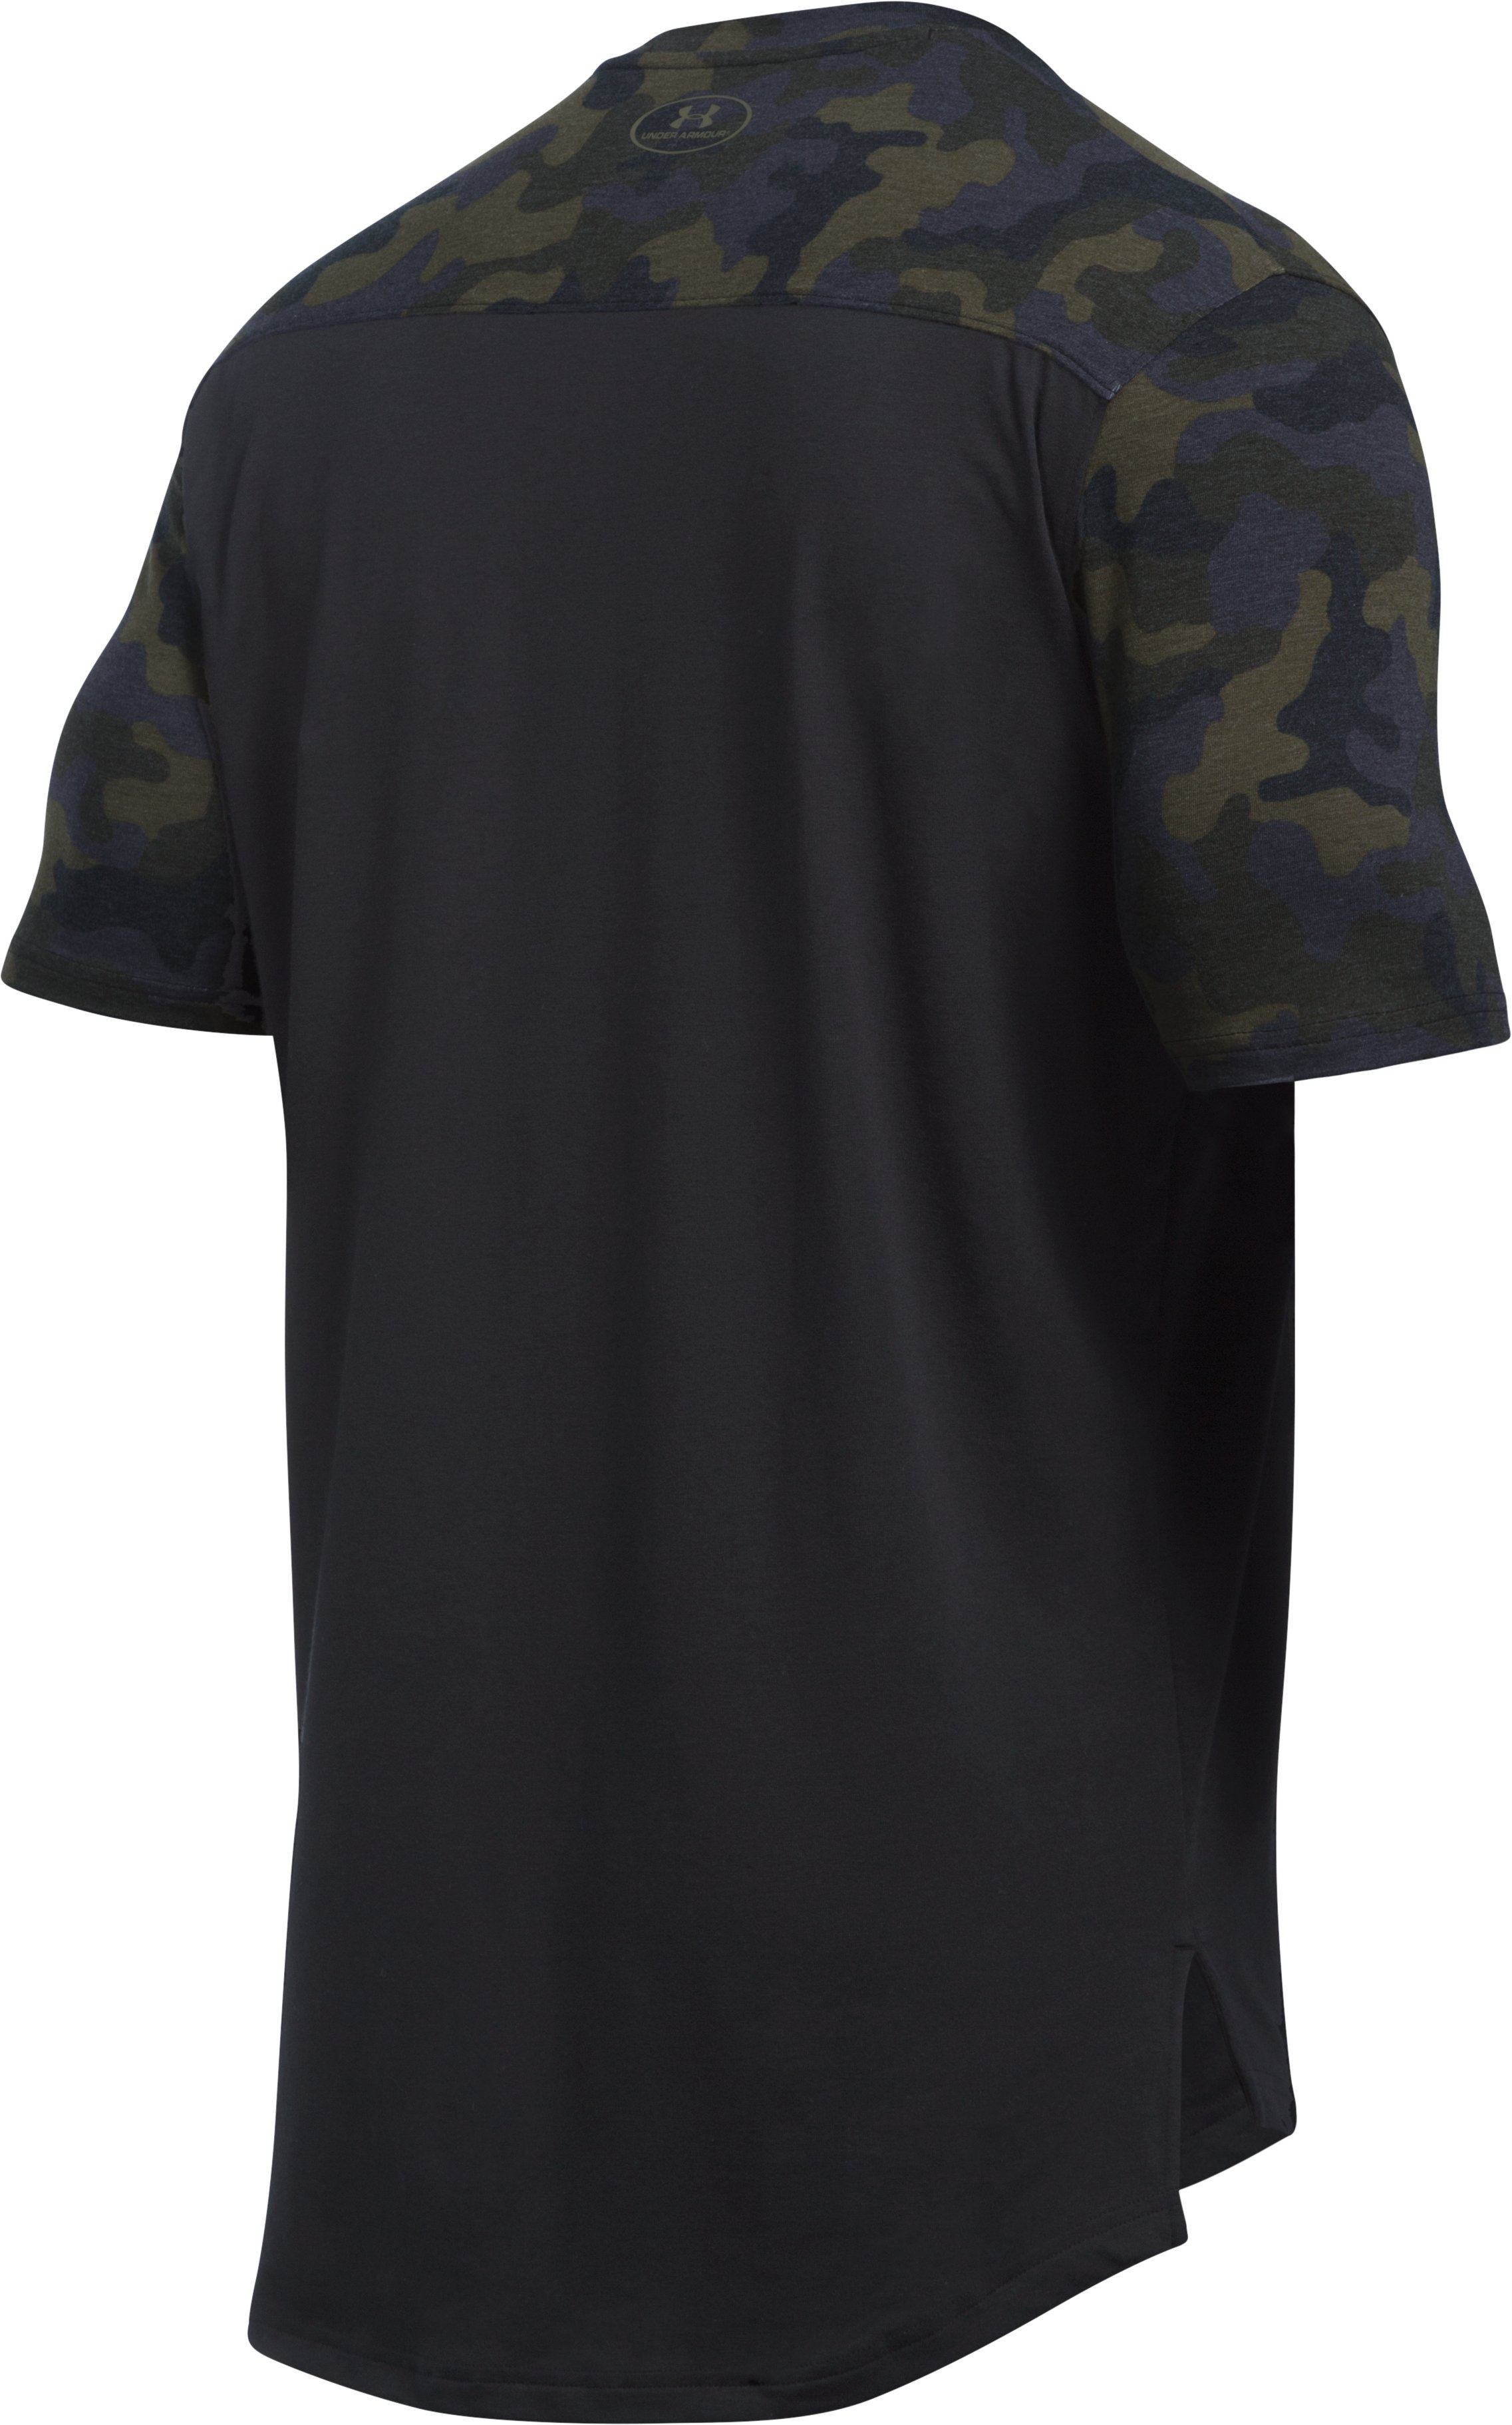 Men's UA Pursuit Circle Camo T-Shirt, Black